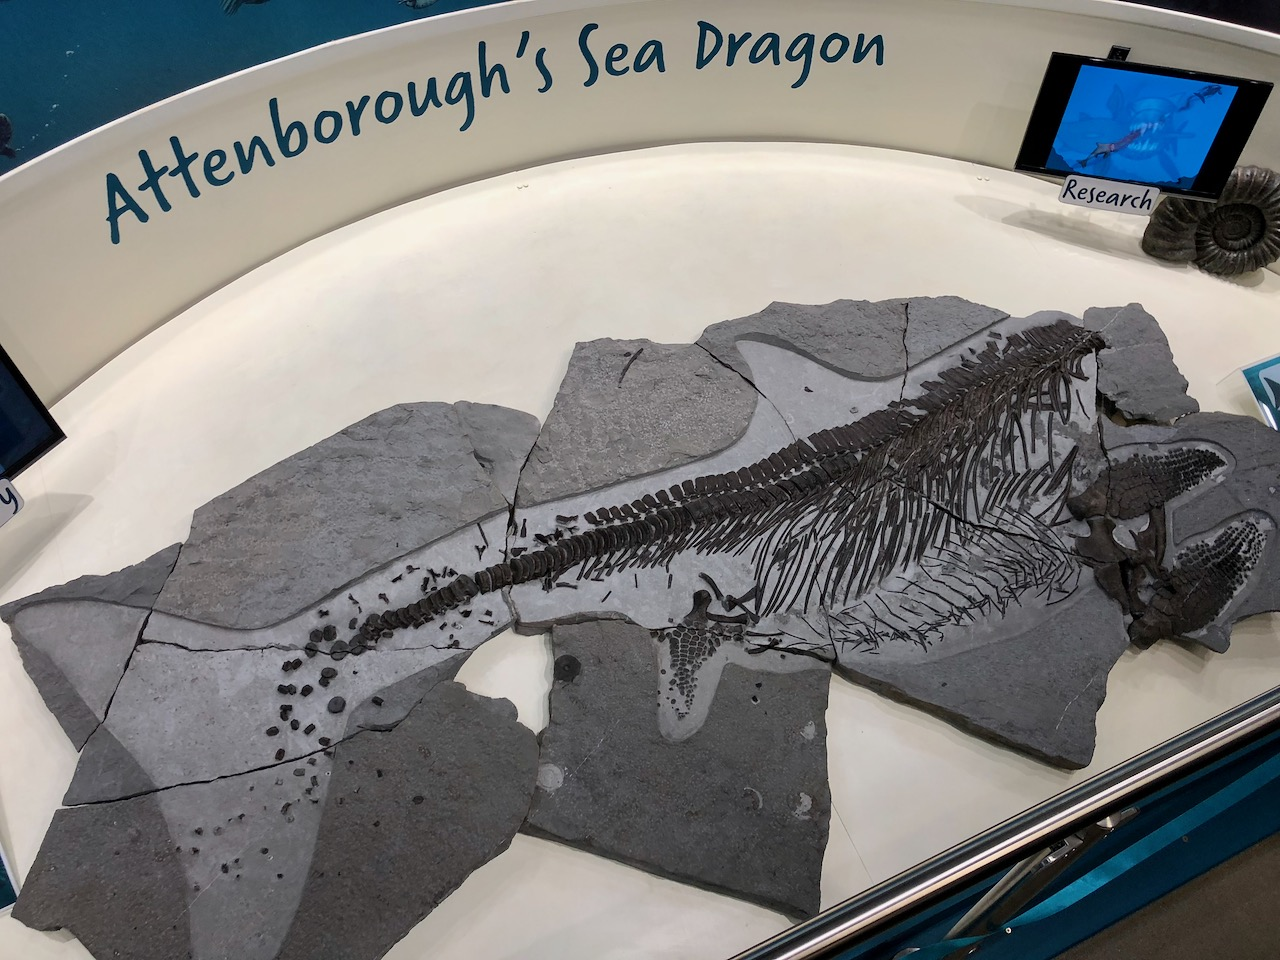 Attenborough's Sea Dragon